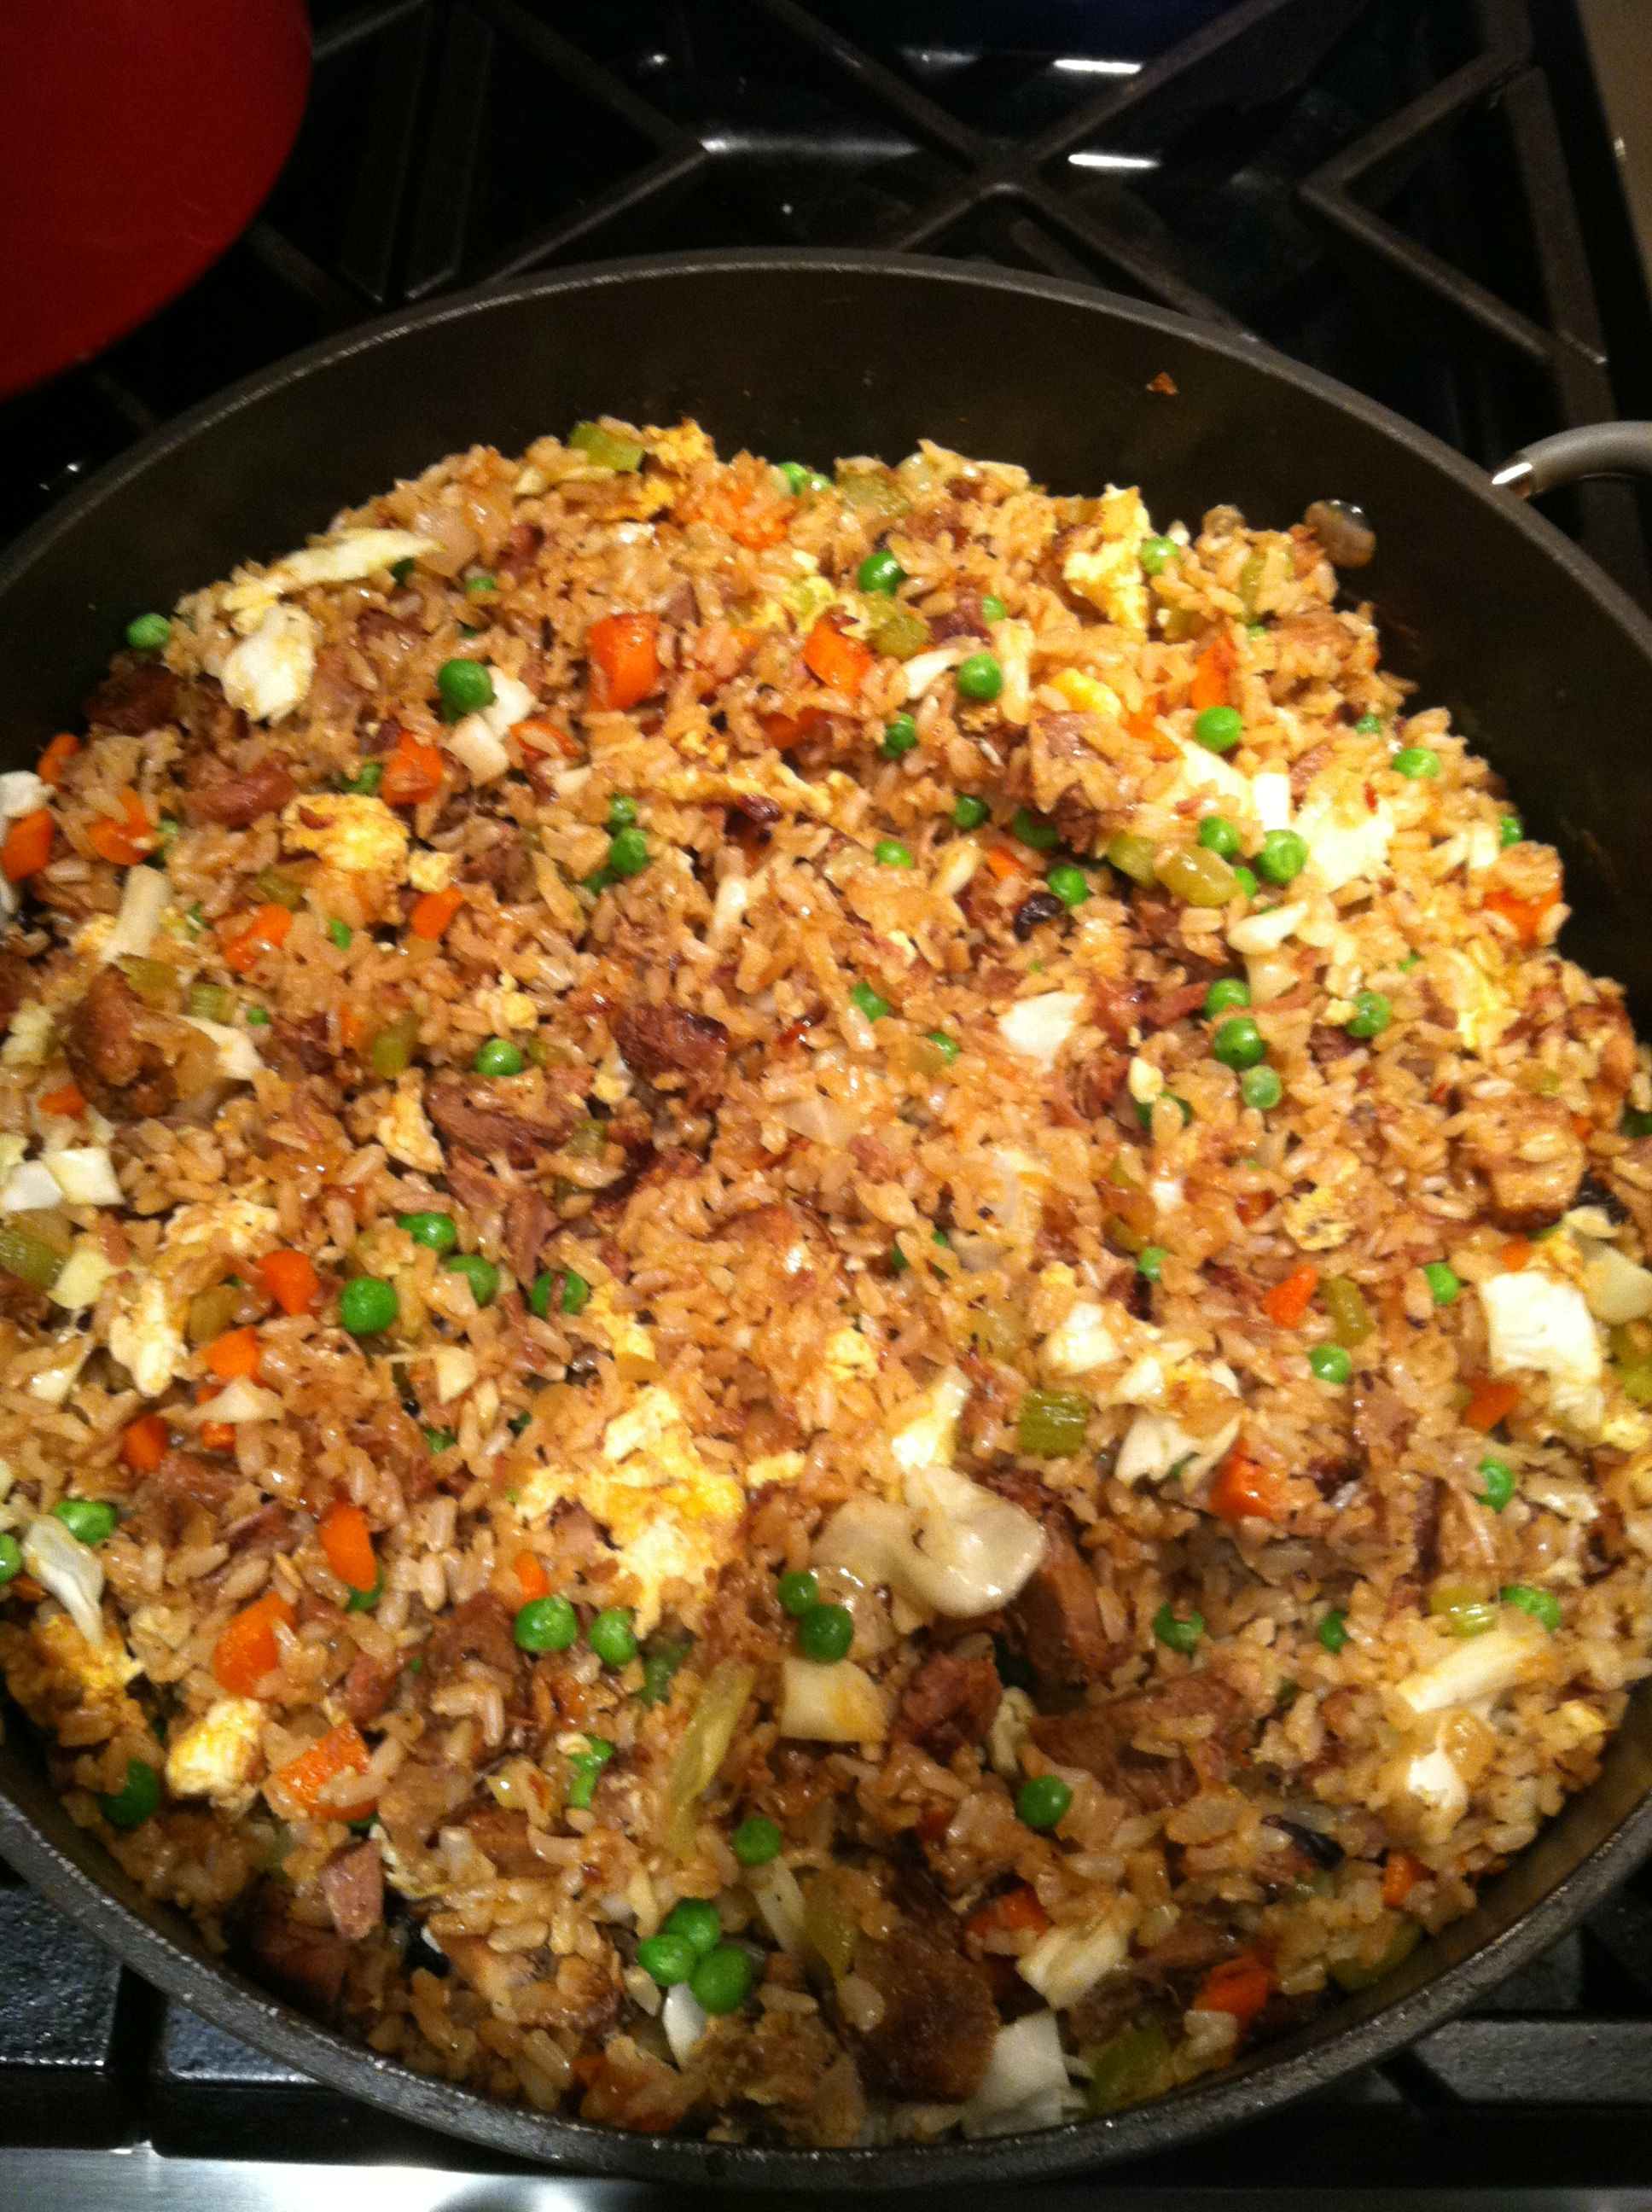 The best fried rice youll ever make rice fried rice and beef kabobs my fried rice is so good as a side dish or main dish as a main dish i cut up cooked pork or chicken seasoned with teriyaki sauce and add to the ccuart